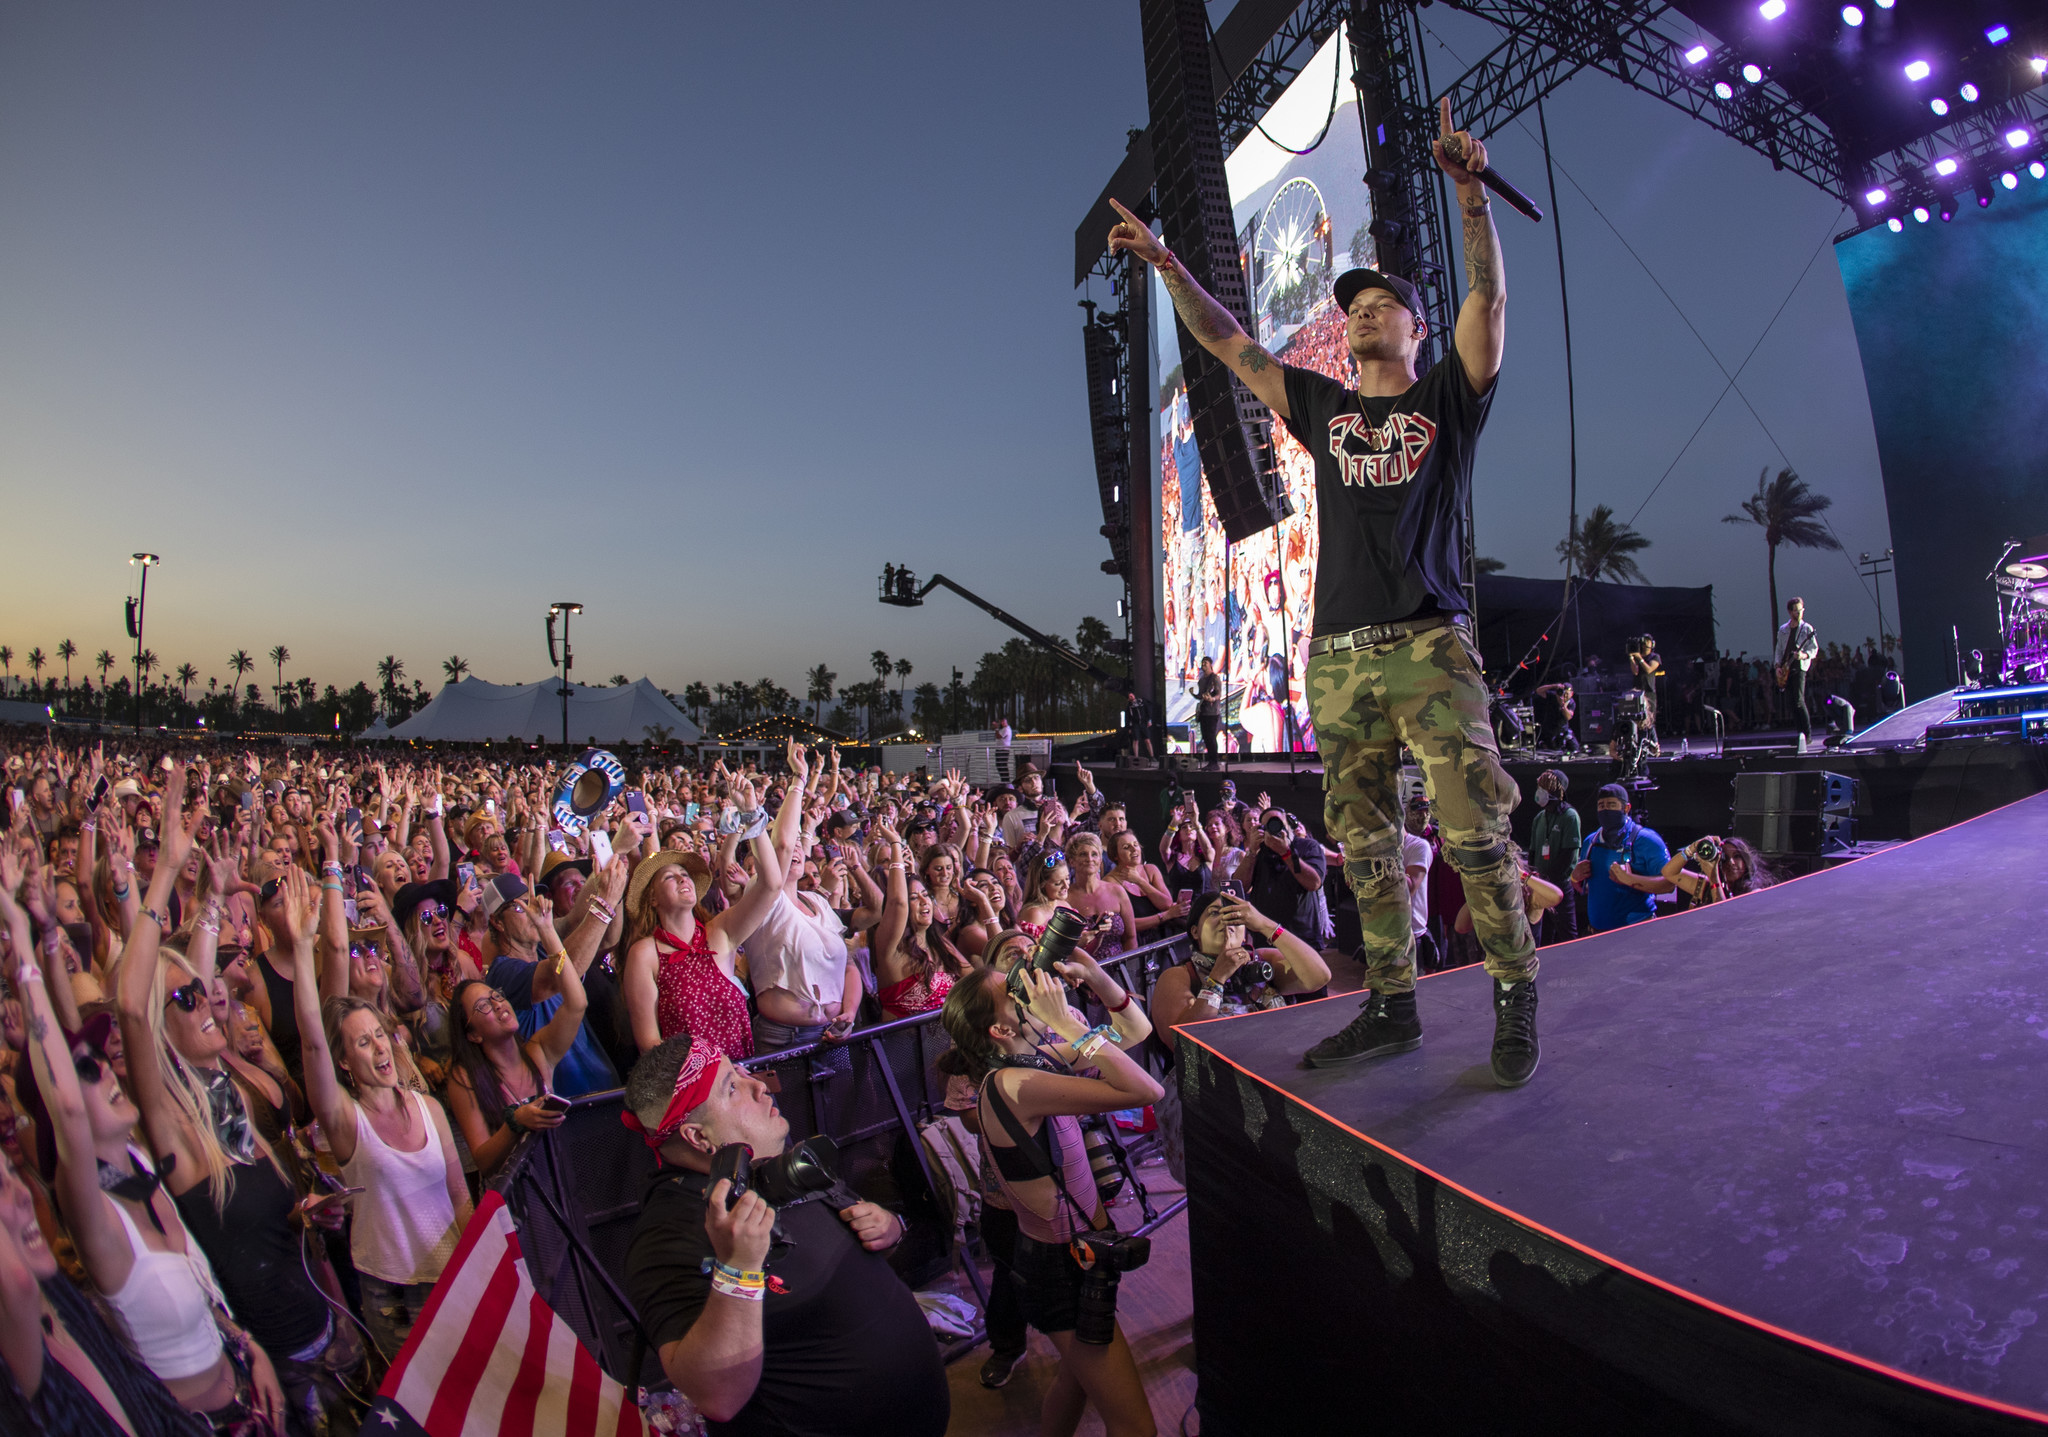 INDIO, CALIF. — FRIDAY, APRIL 26, 2019: The crowd sings along as Kane Brown performs on the Mane St